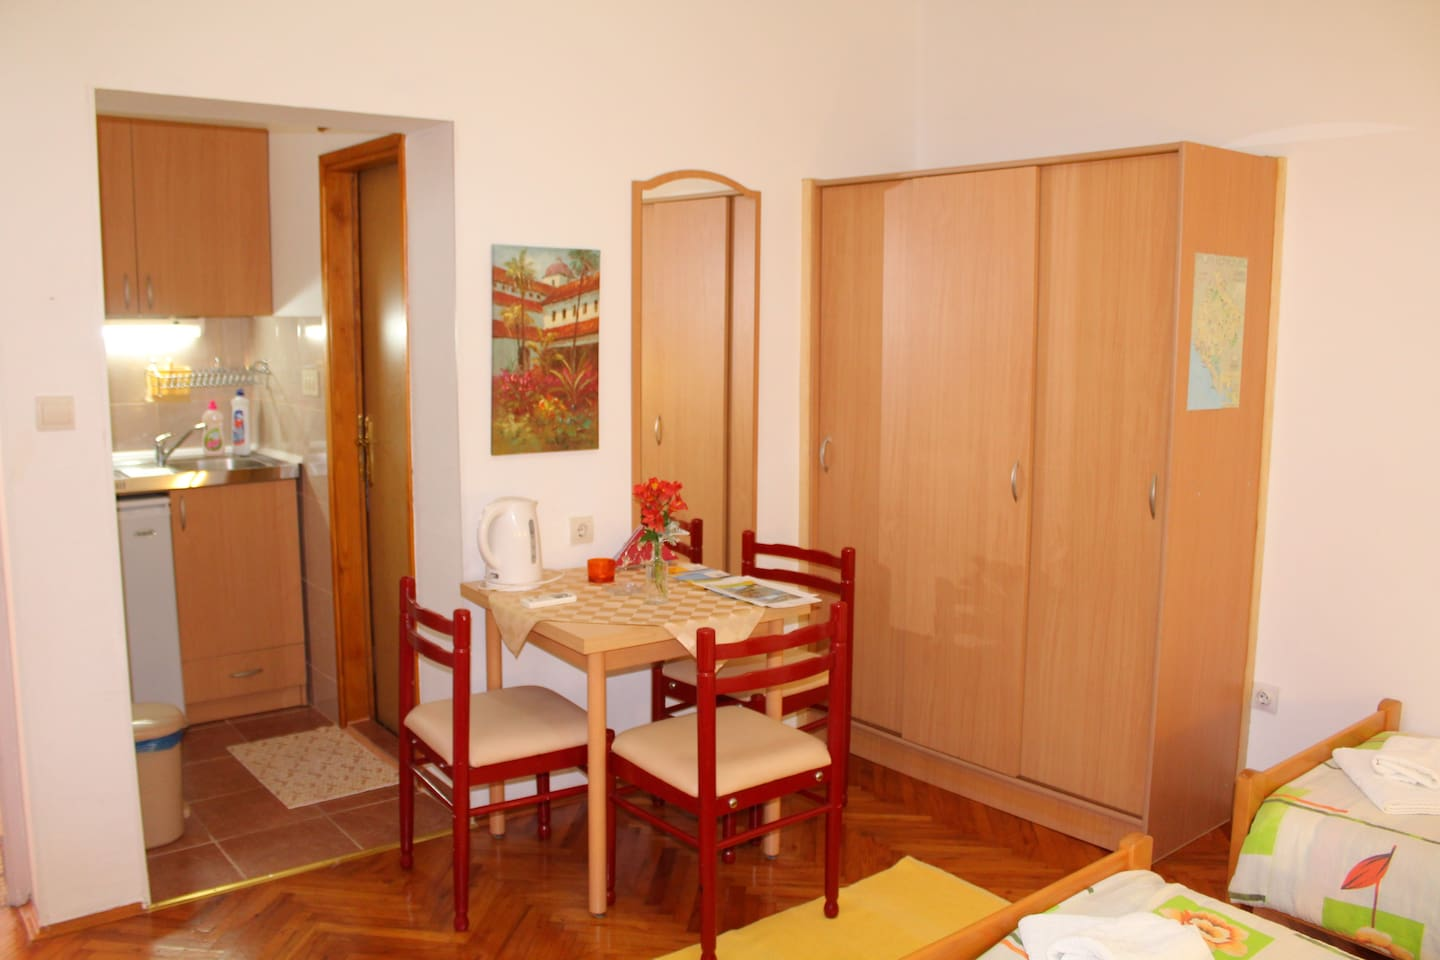 Studio apartment for three persons - dining area